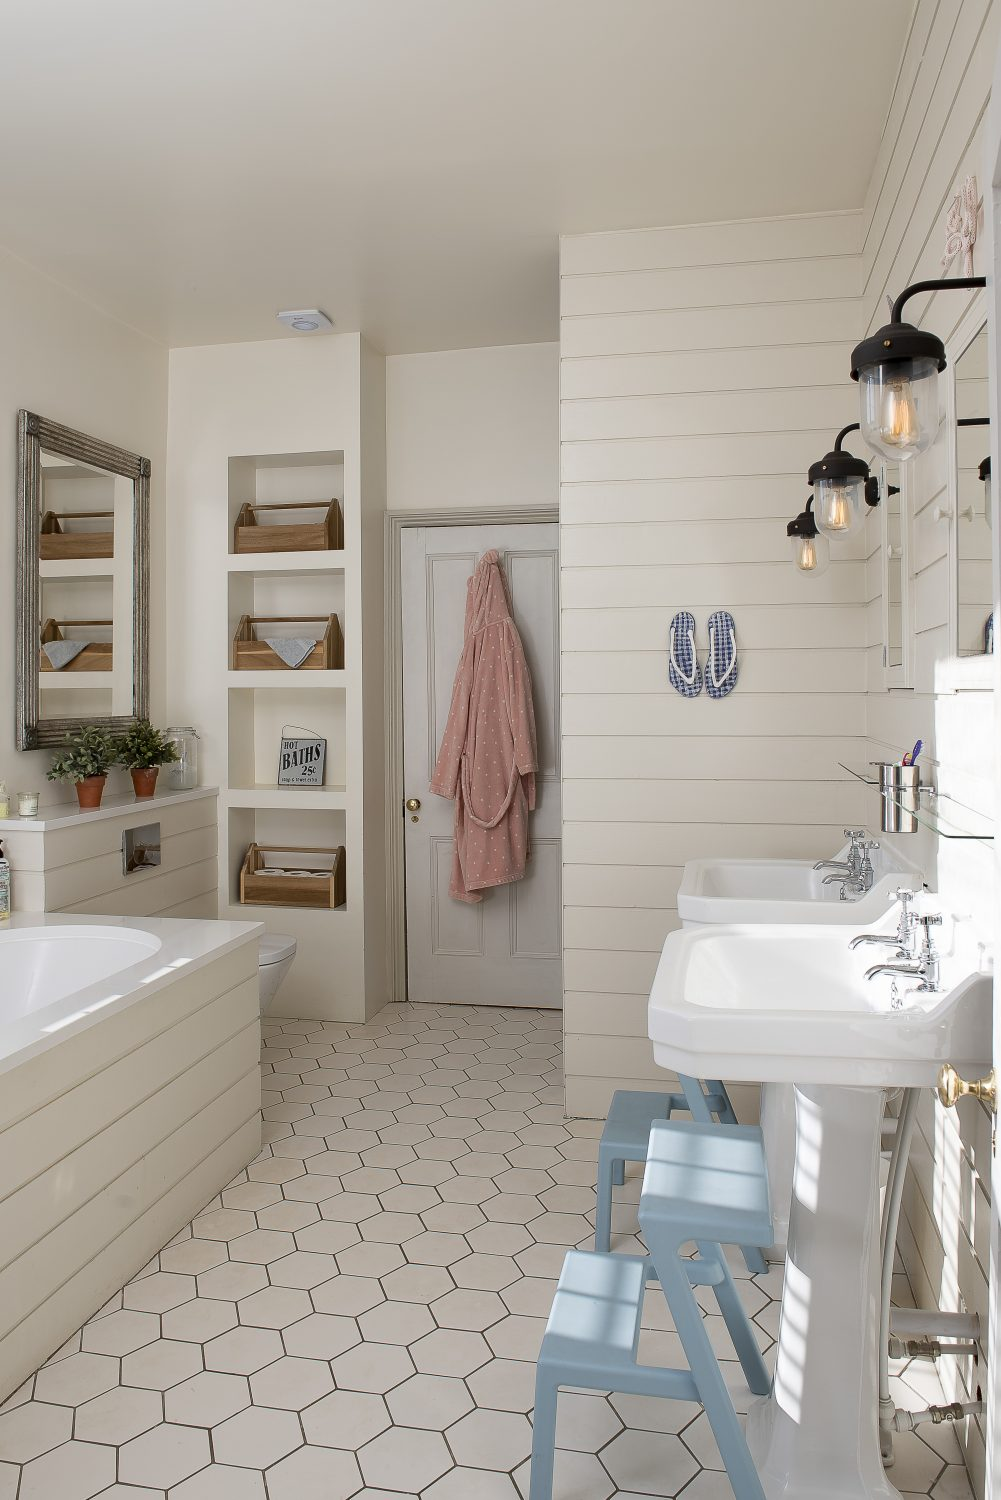 The Jack and Jill bathroom he shares with his sister was originally two rooms divided by a stud wall